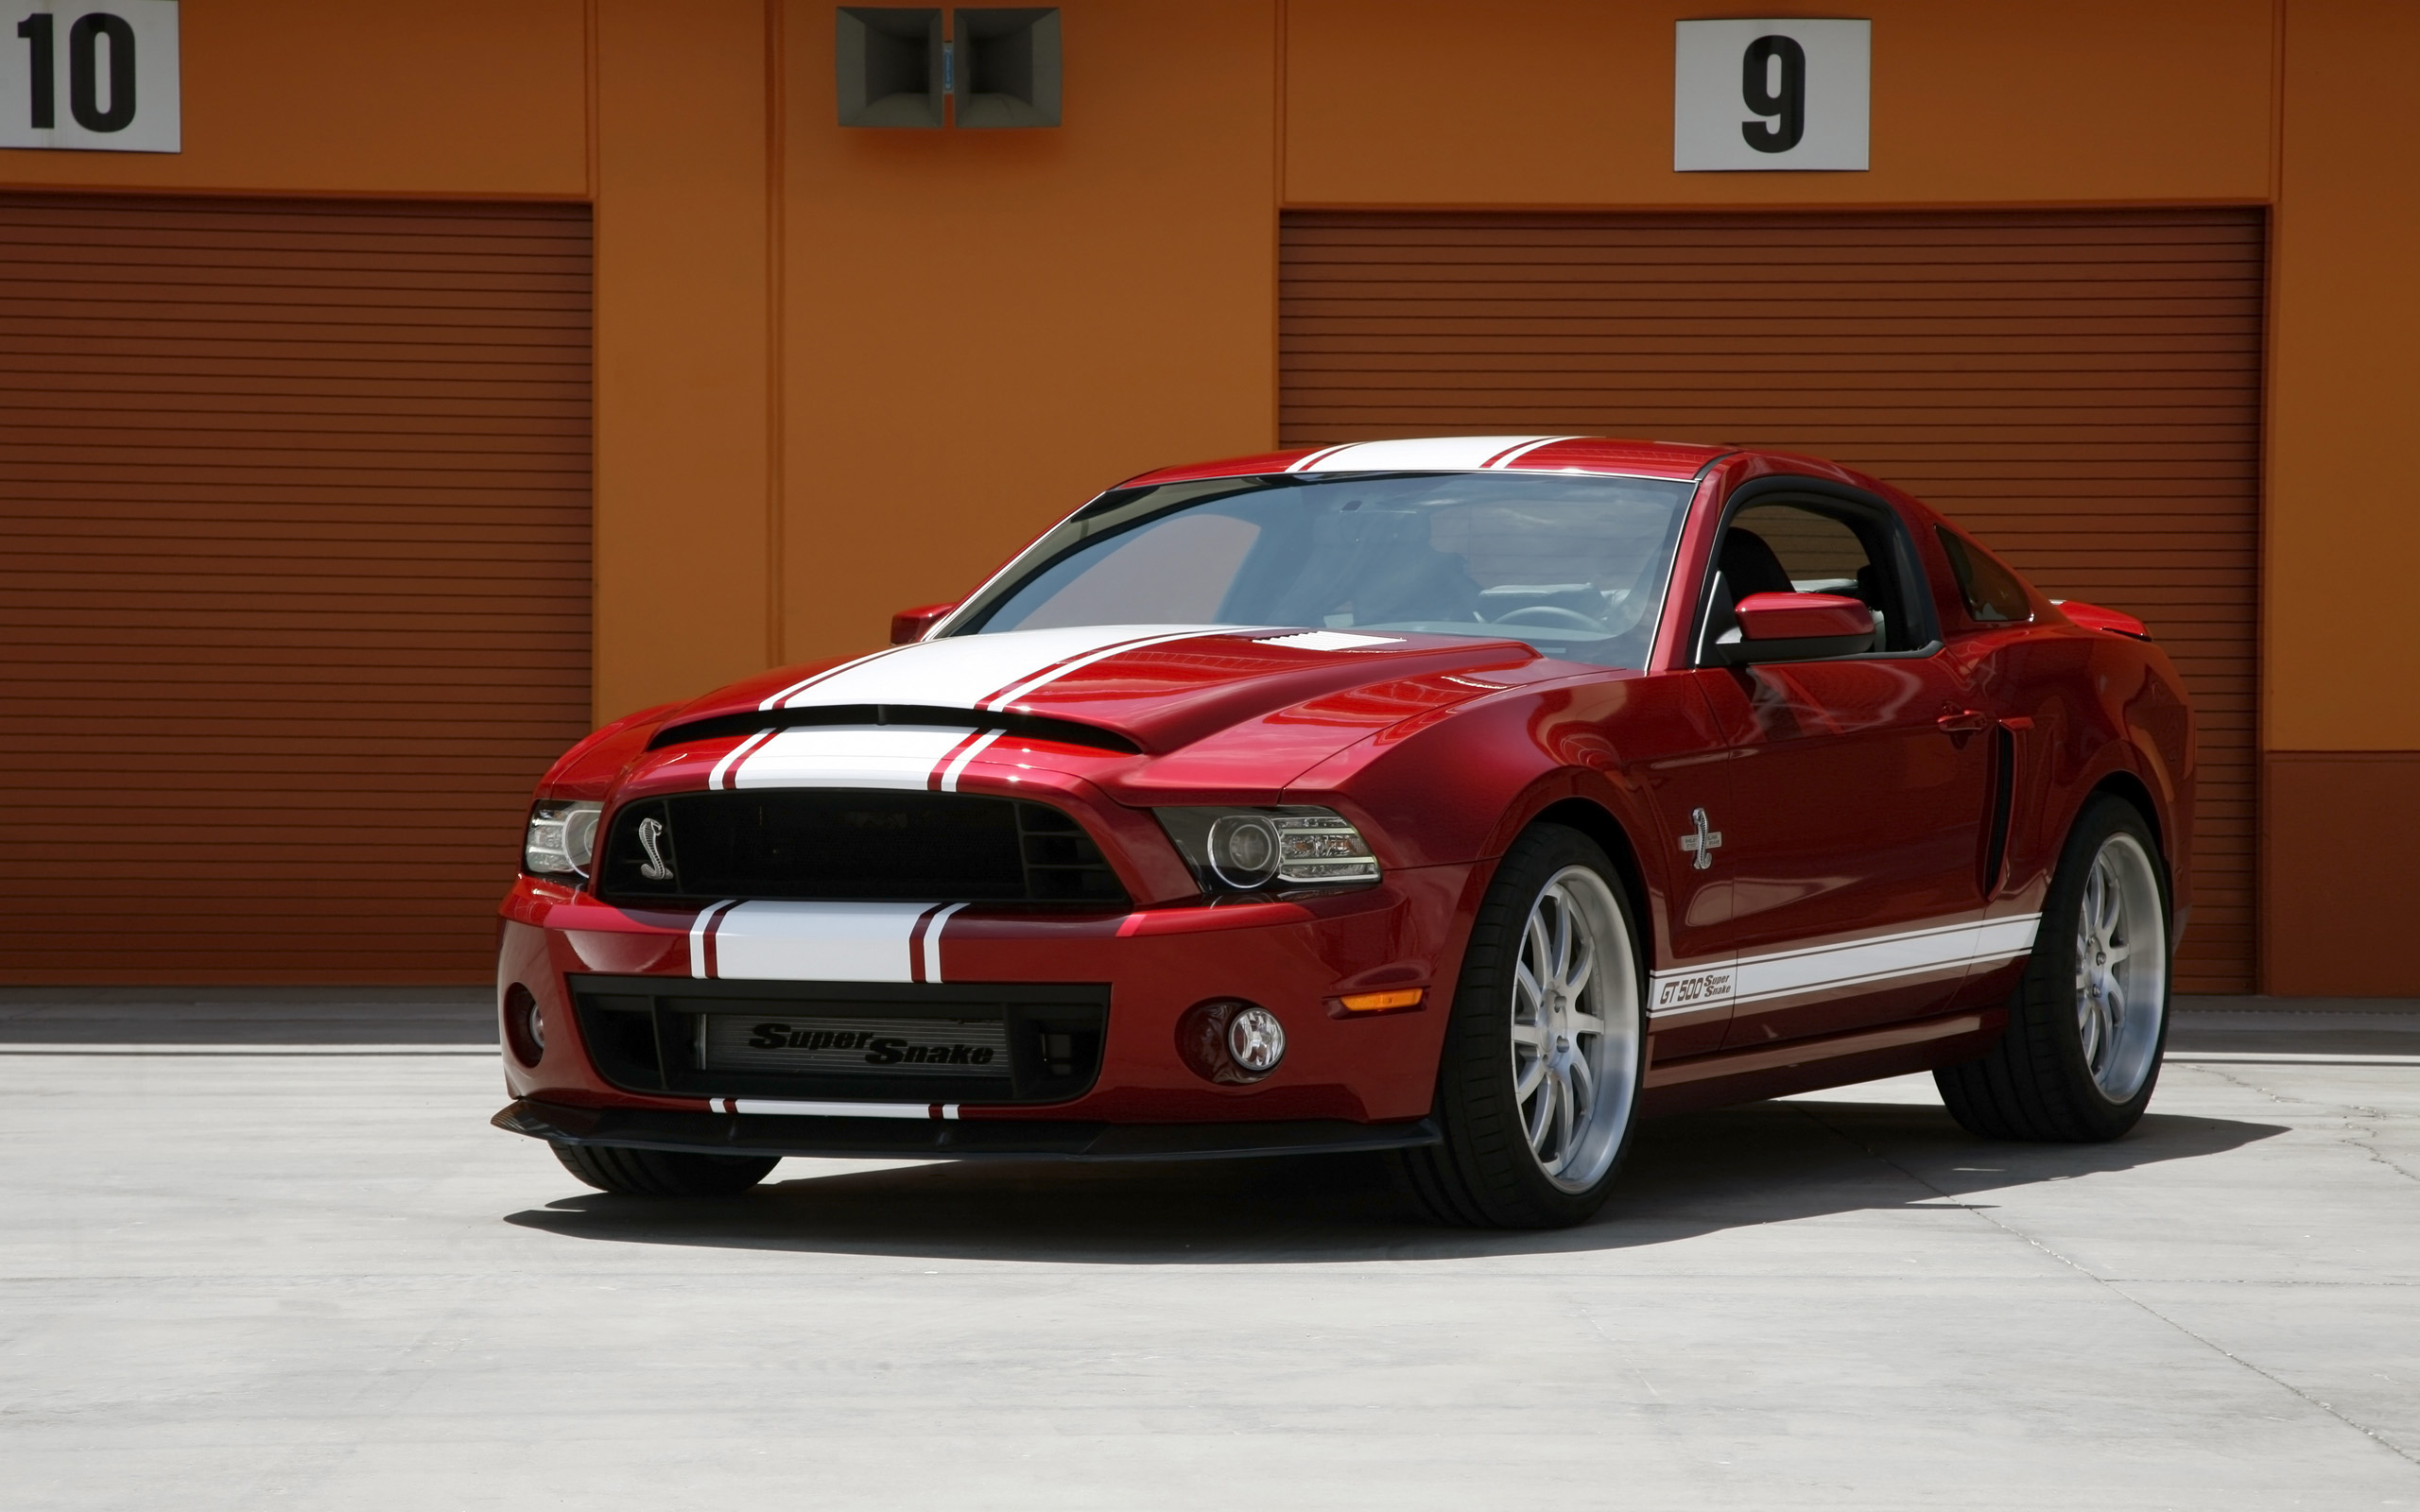 Ford Mustang Shelby Gt500 Super Snake Photos